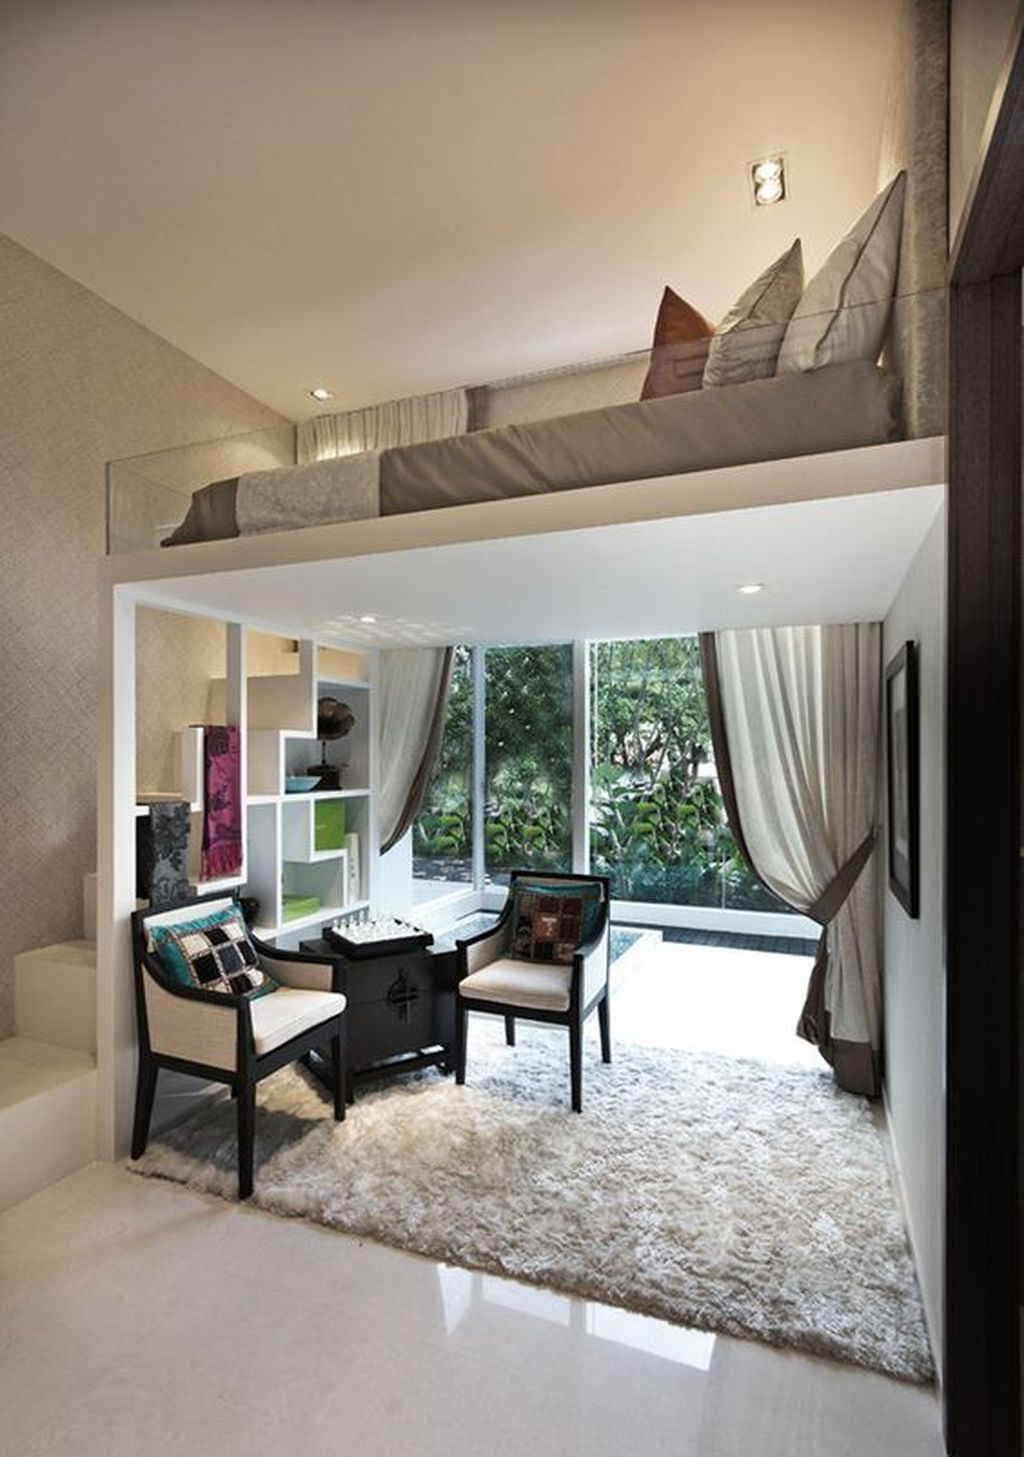 Inspiring And Affordable Decoration Ideas For Small Apartment 48